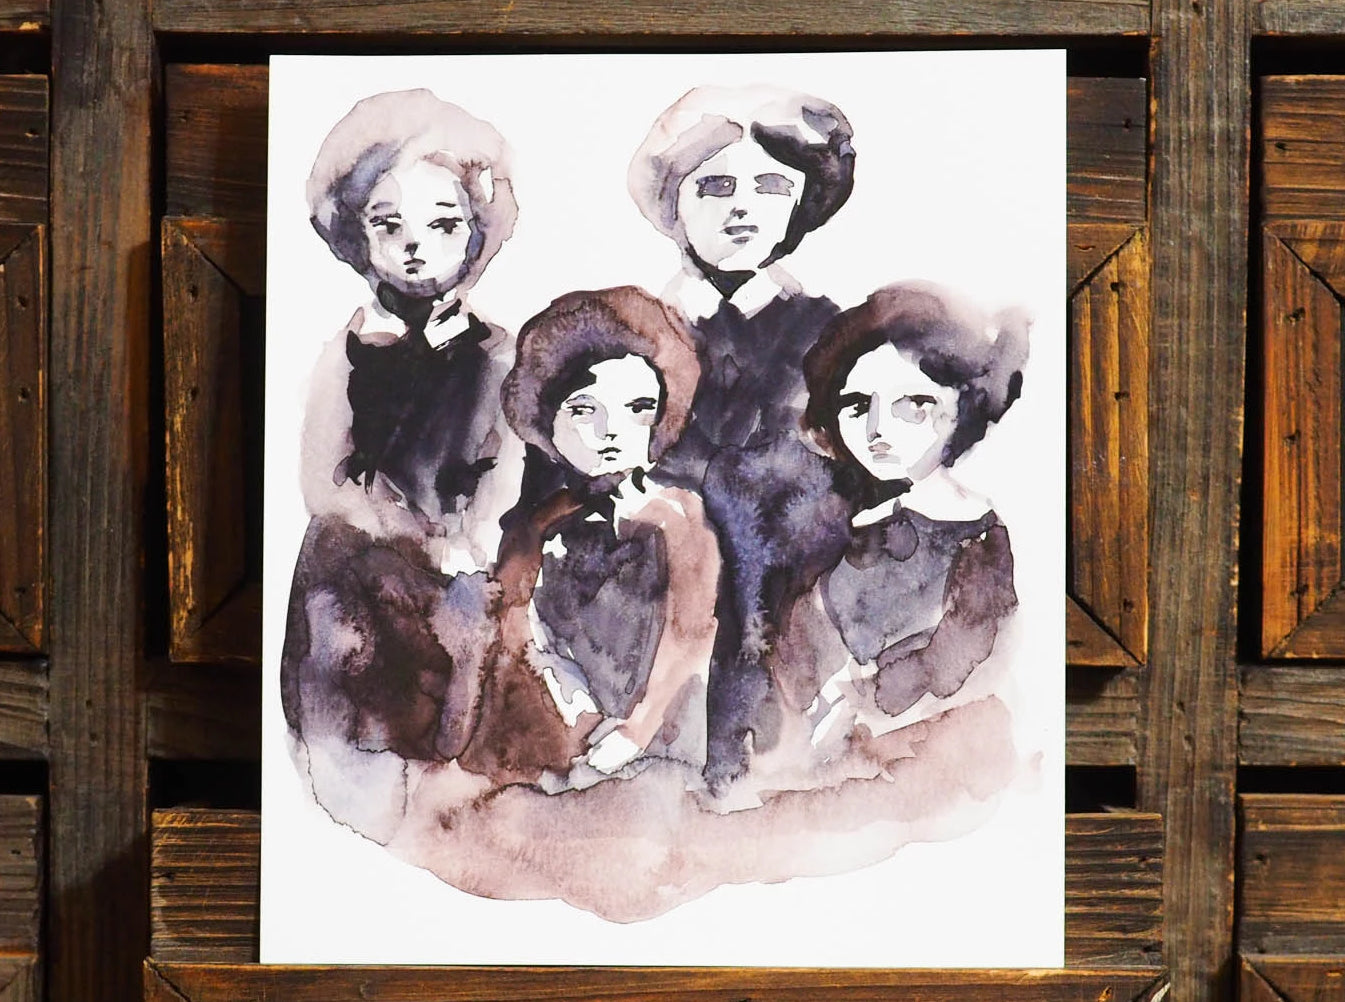 Original watercolor painting on paper by Danita Art. A vintage family portrait of four women got transformed into a beautiful watercolour painting ready to be framed and treasured as a family heirloom.